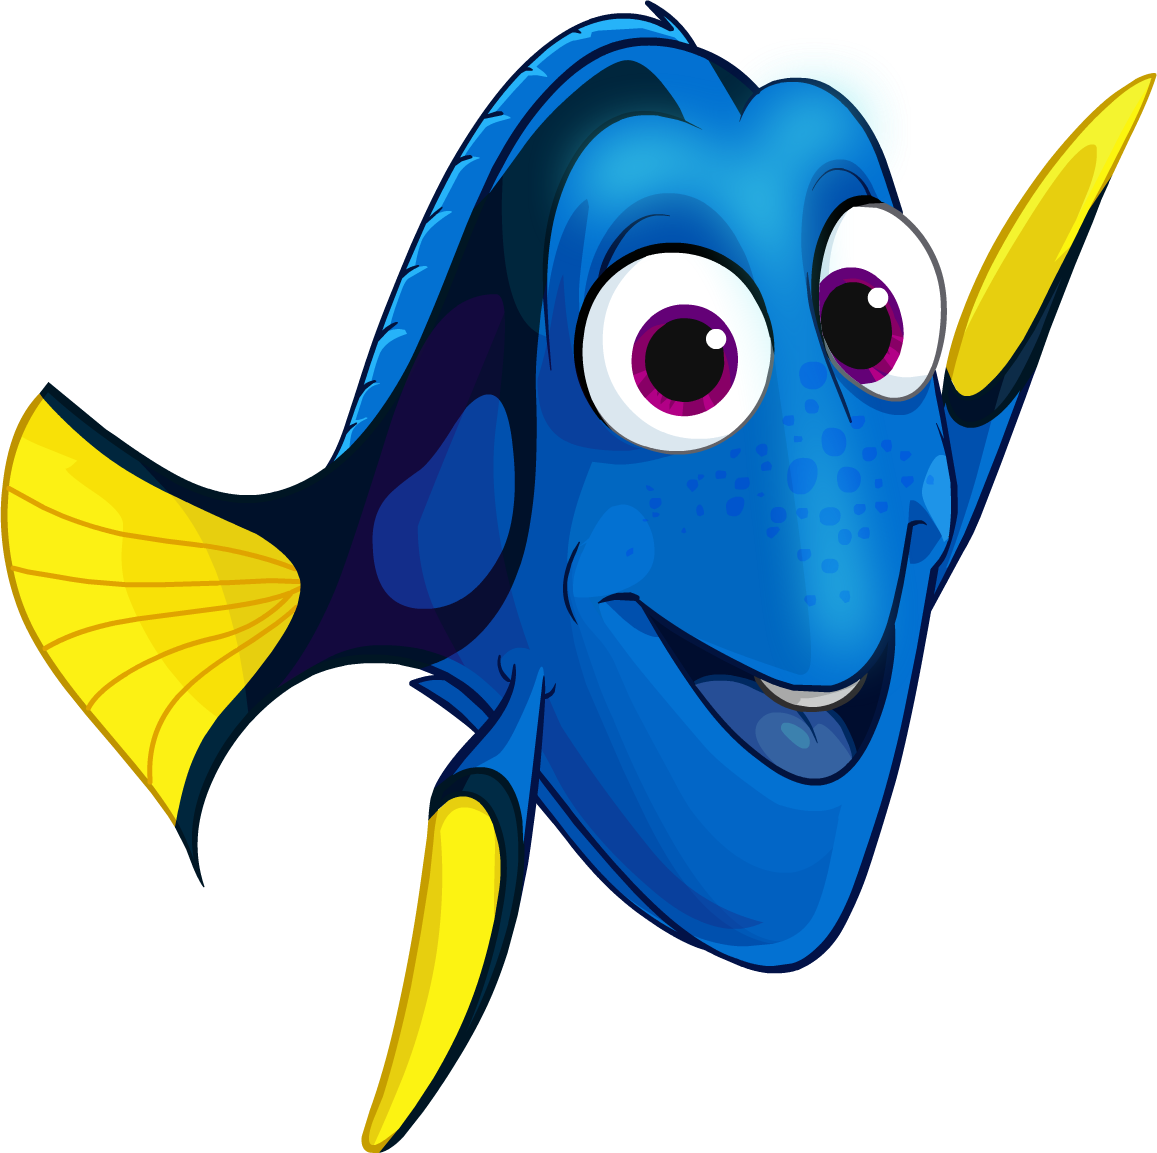 image dory png club penguin wiki fandom powered by wikia free clip art party hat clip art party hat images